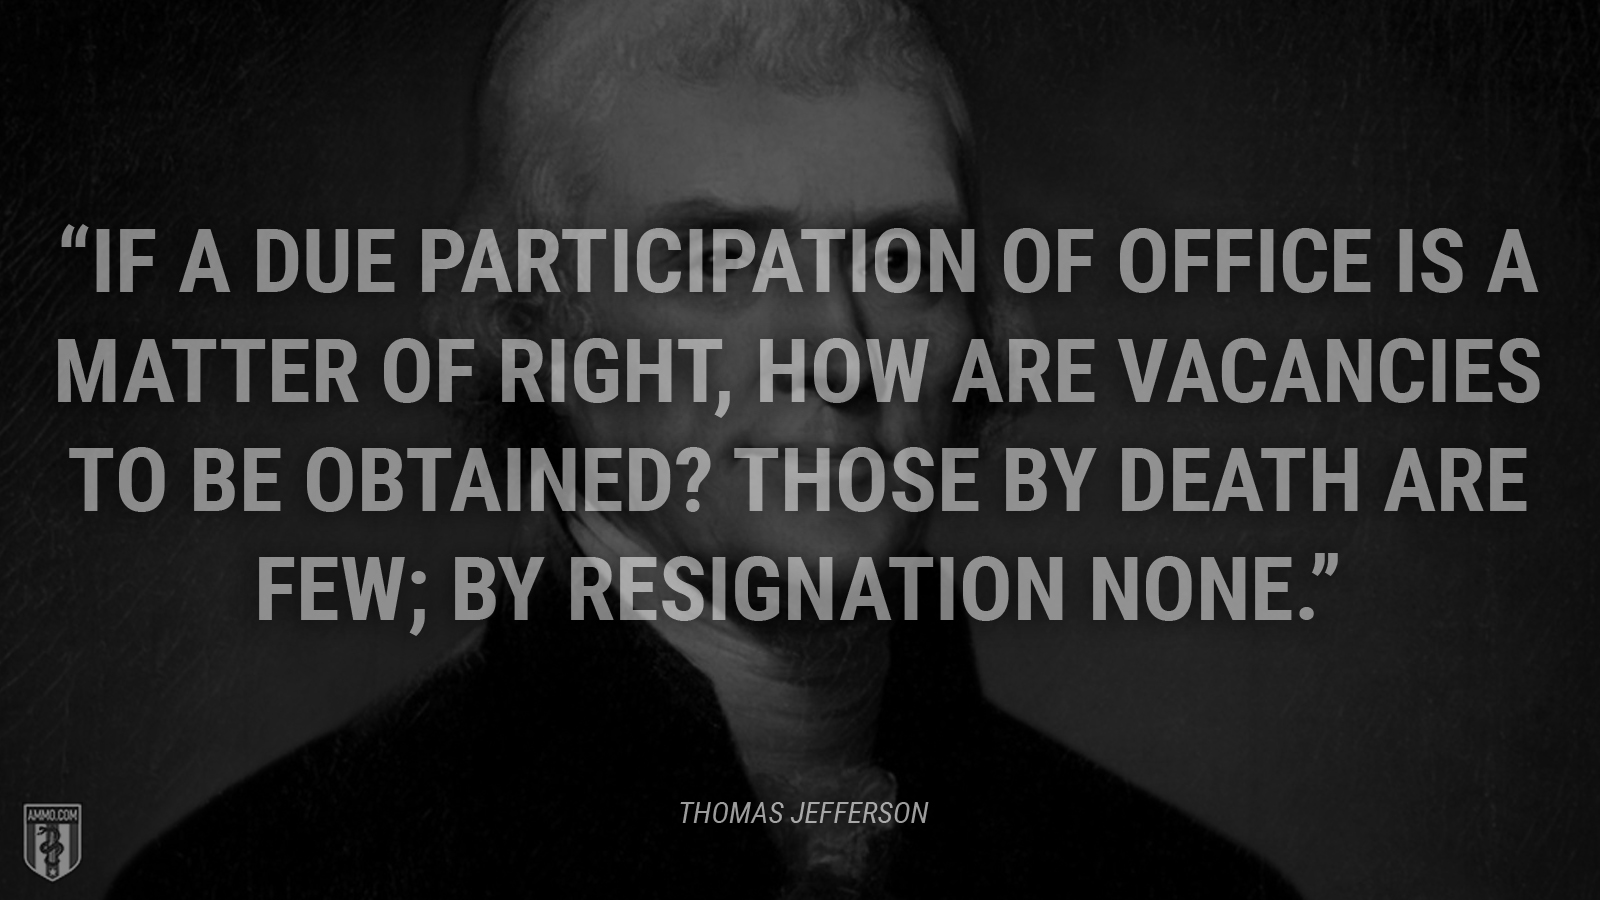 """If a due participation of office is a matter of right, how are vacancies to be obtained? Those by death are few; by resignation none."" - Thomas Jefferson"